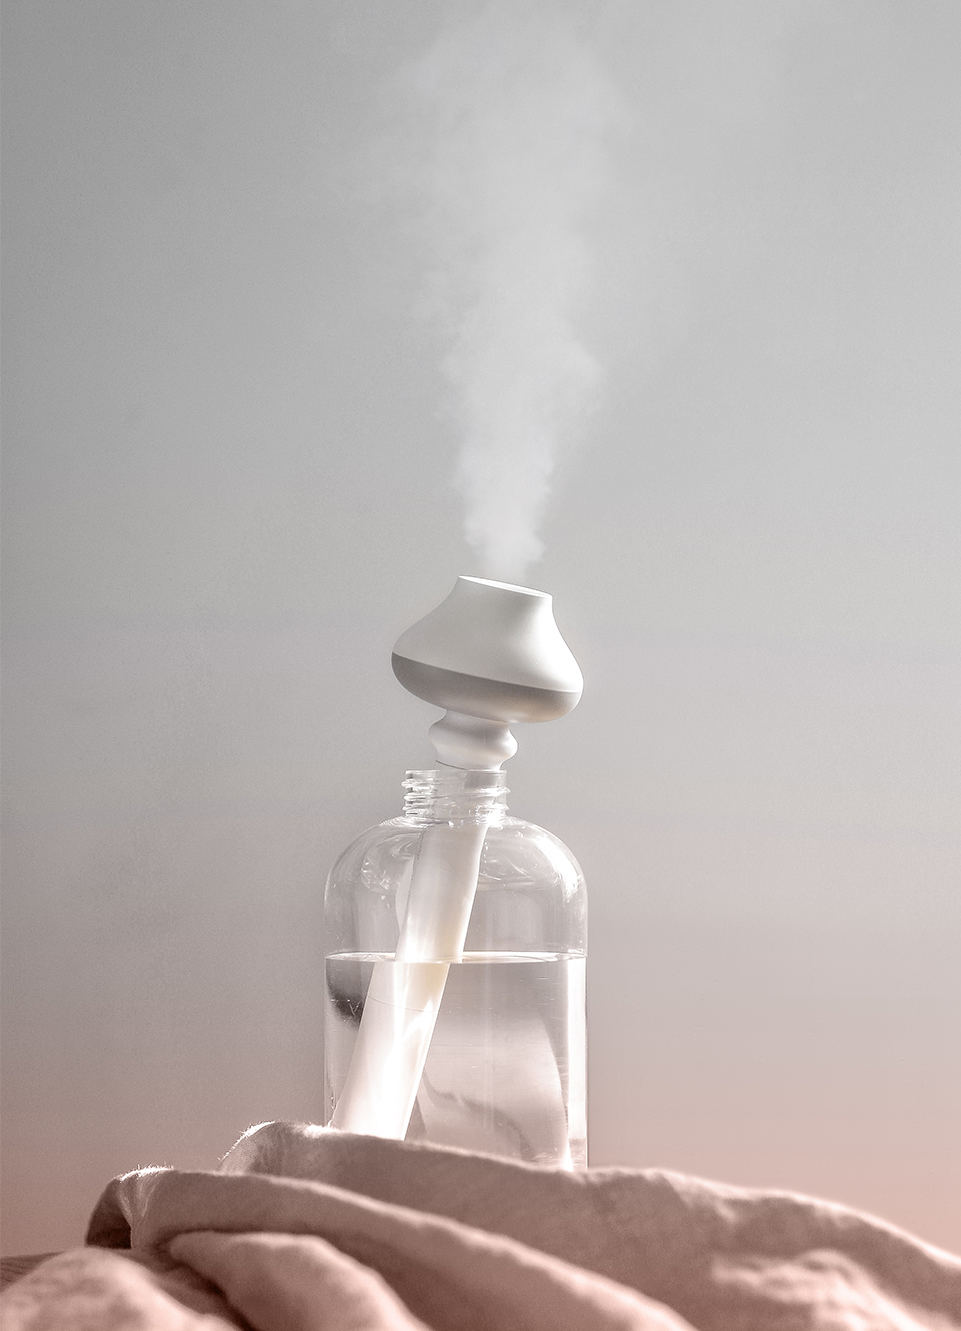 H3-Humidifier images